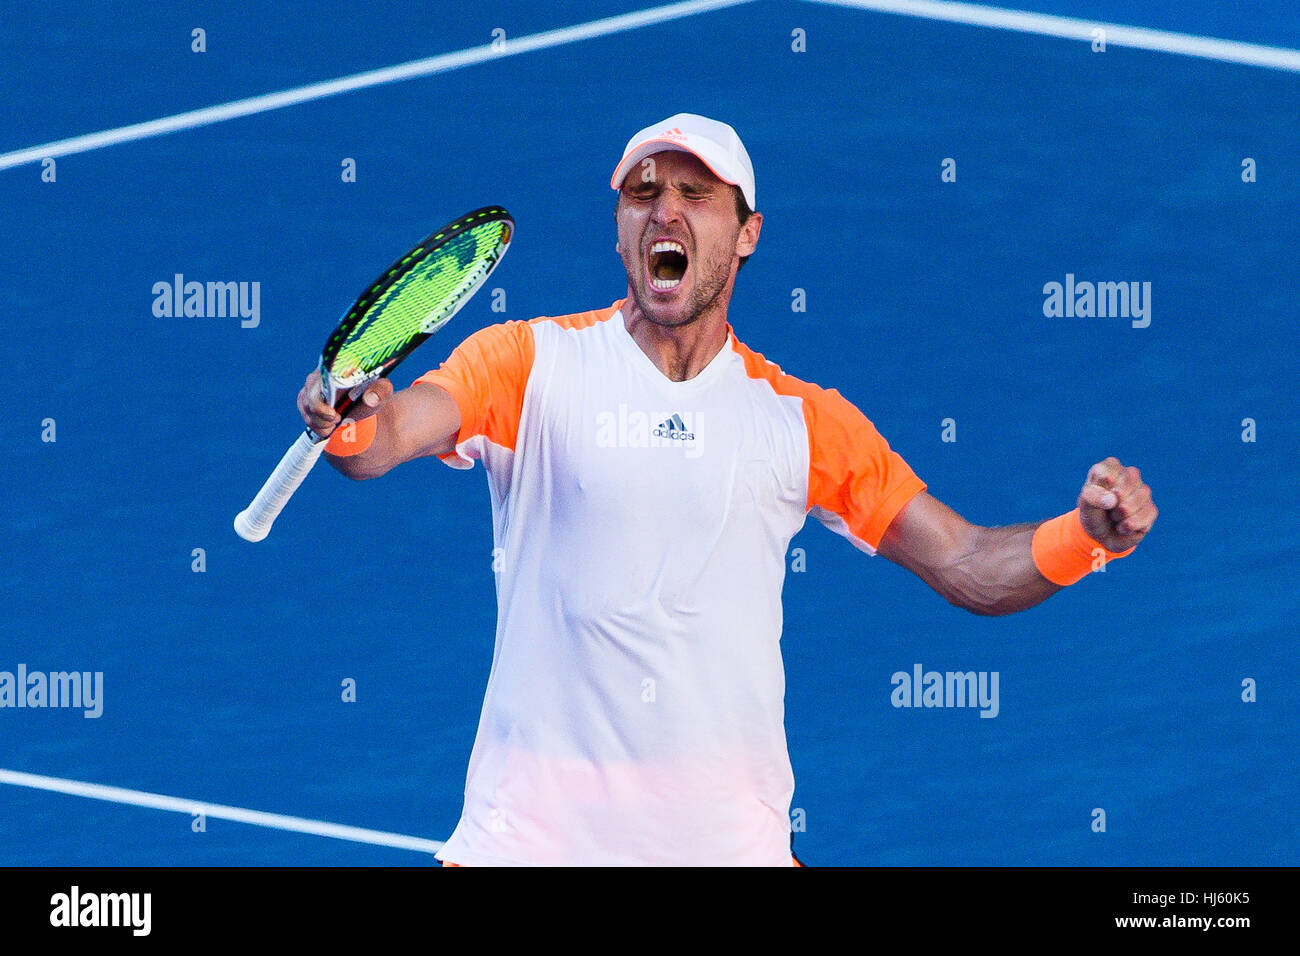 Mischa Zverev of Germany ousts world number one Andy Murray during the 2017 Tennis Australian Open at Melbourne Stock Photo